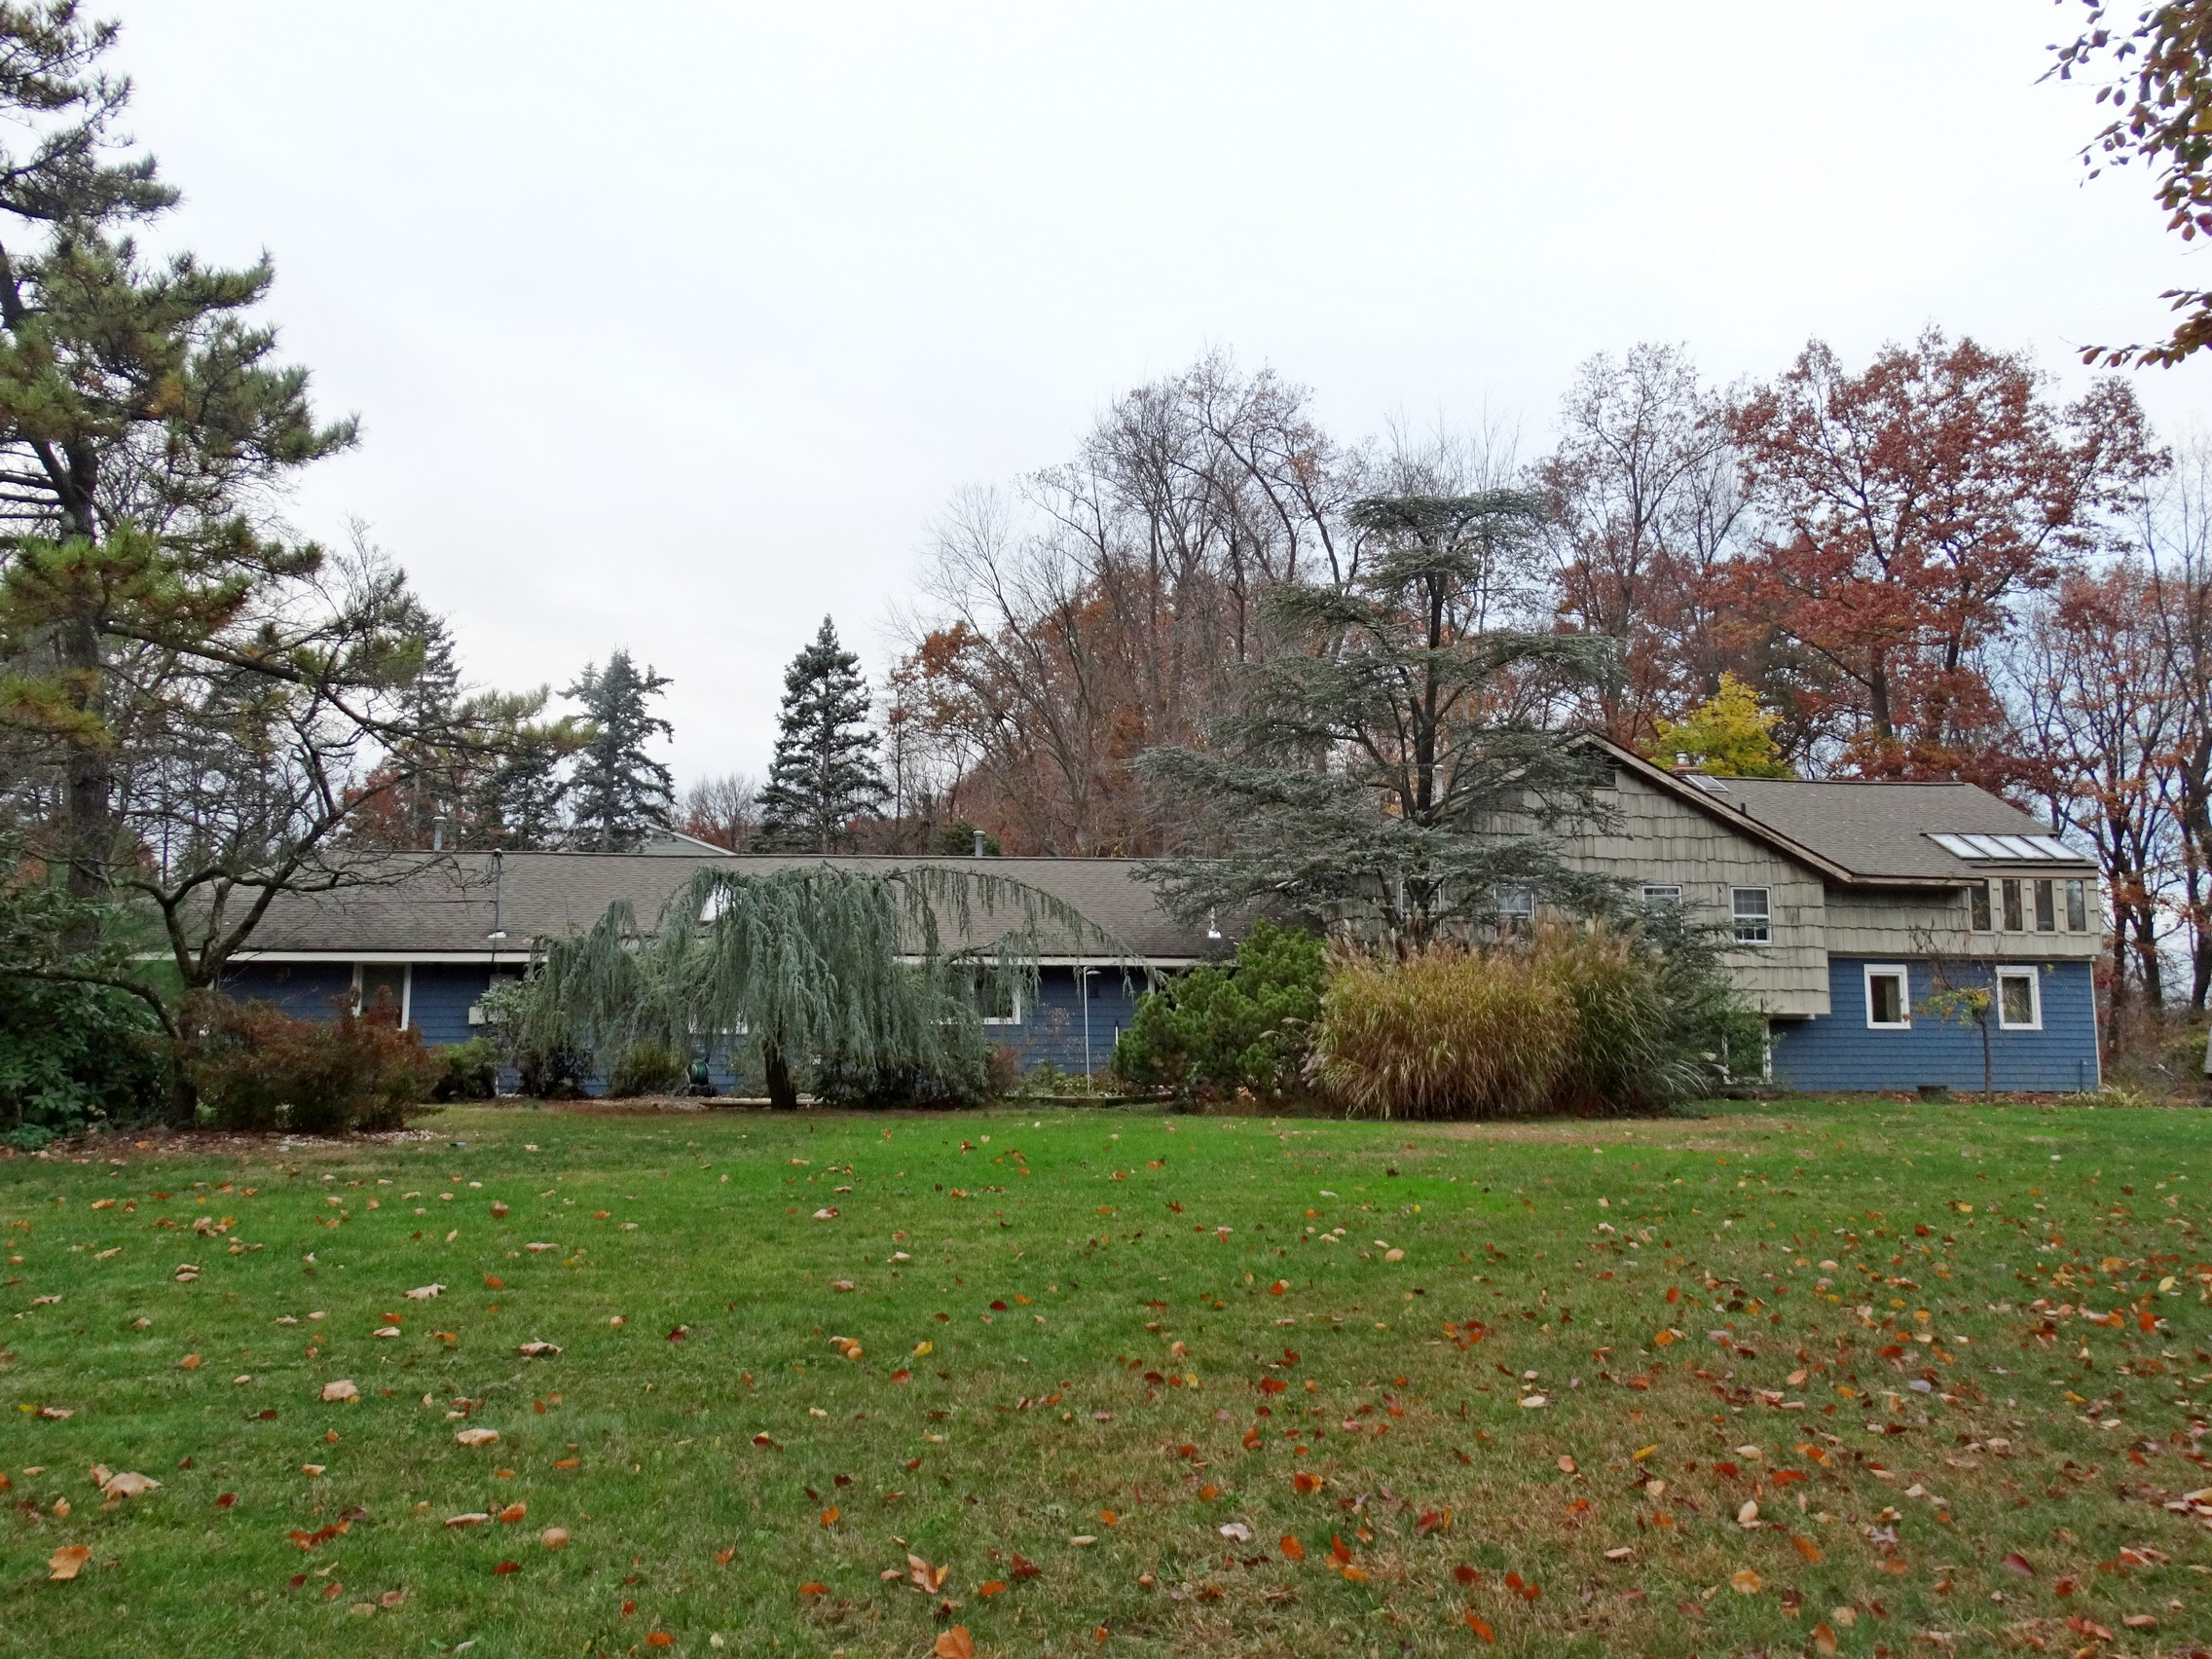 Single Family Home for Sale at Picturesque Park-like Setting 26 Kenbar Road West Nyack, New York 10994 United States